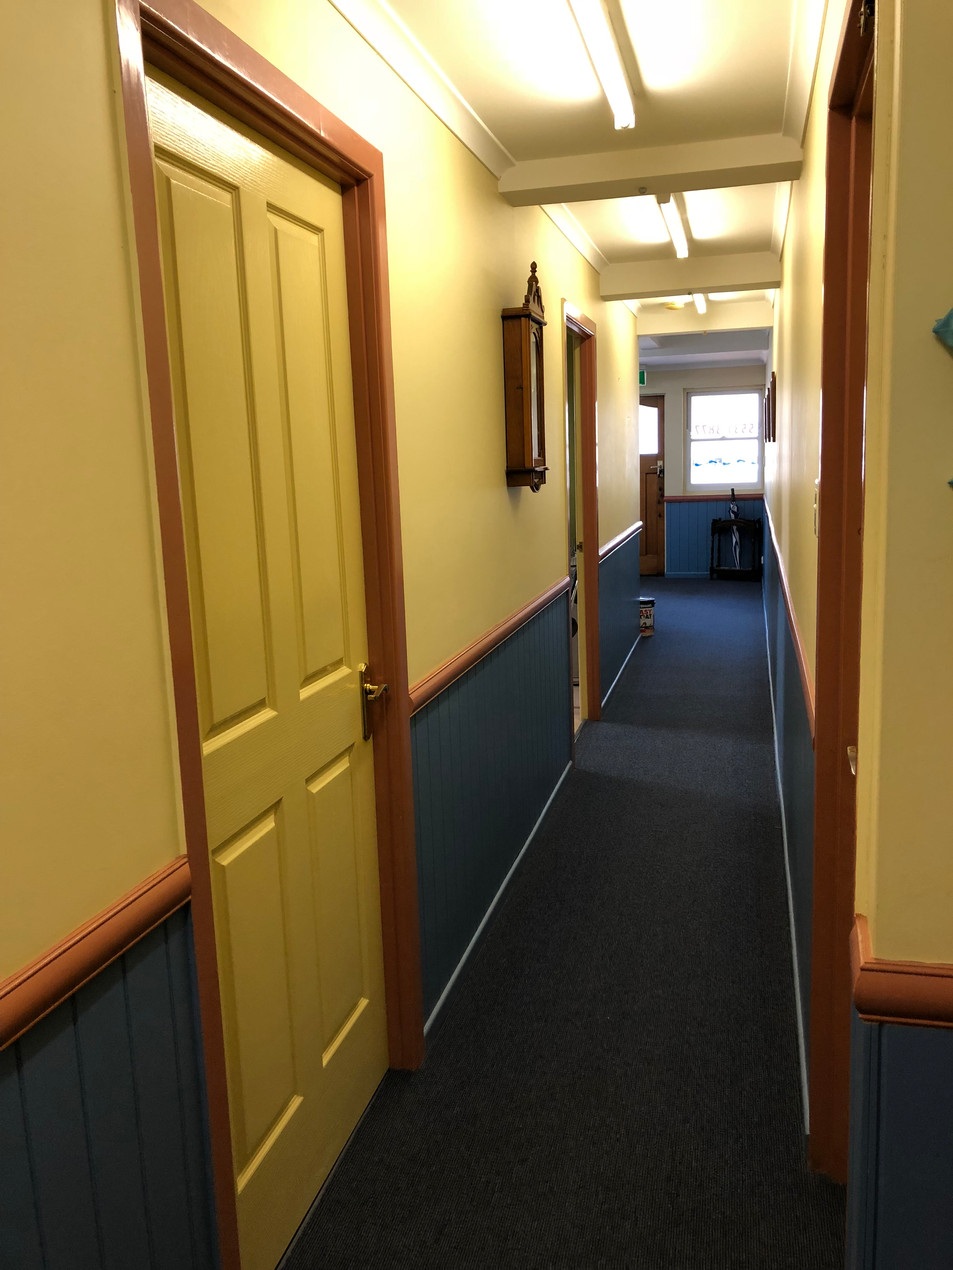 BEFORE - Hallway - Looking to reception